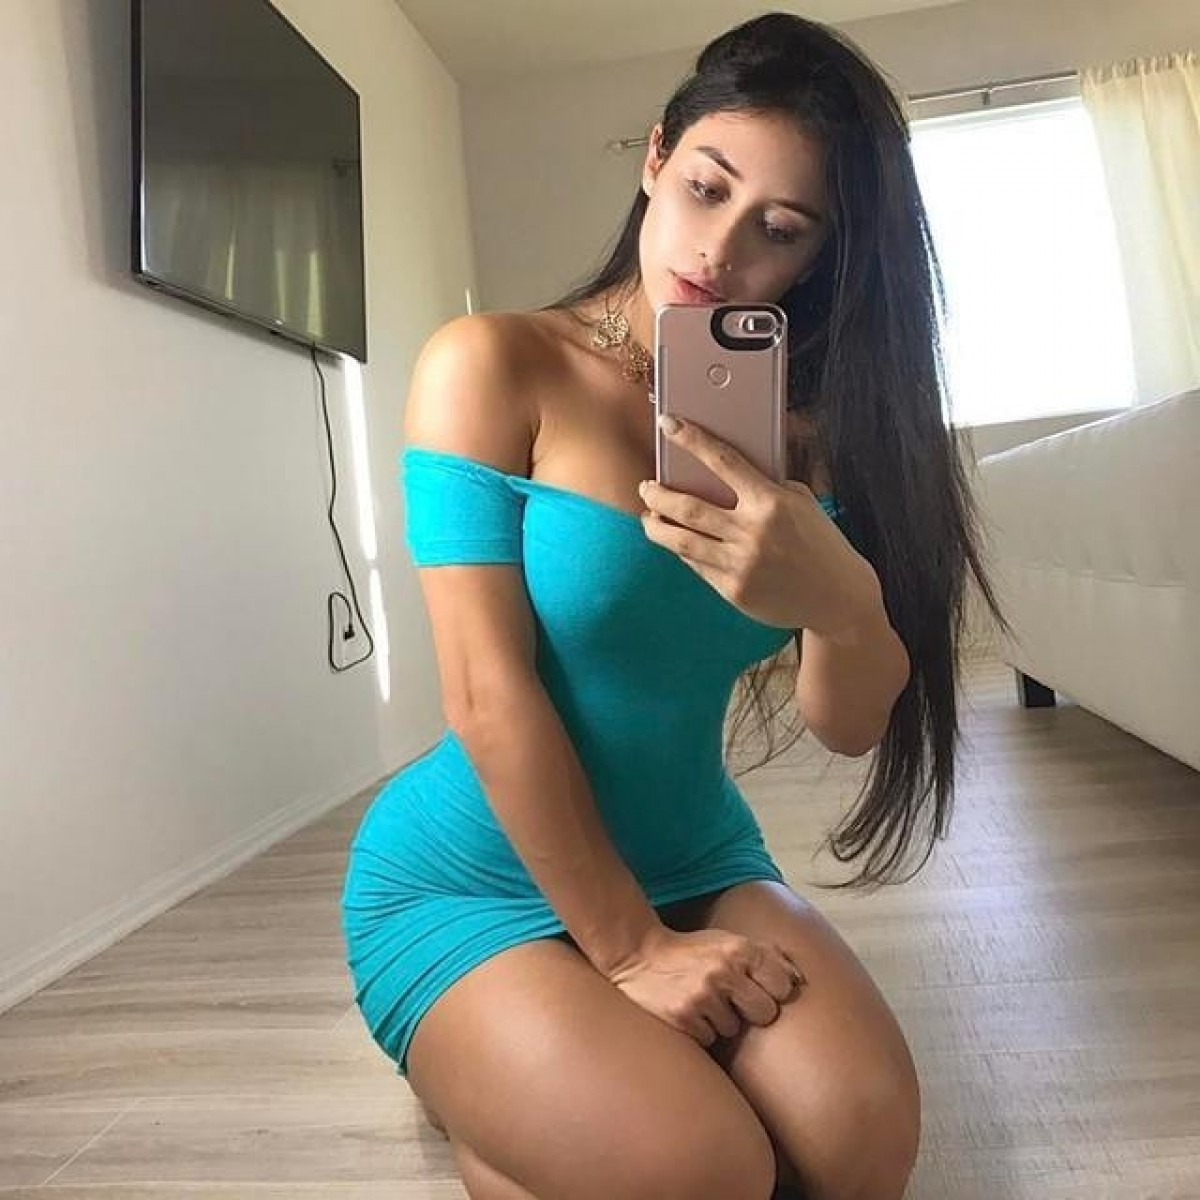 Low price ?chip rate ??all over Delhi 3*5*7*hotels and parsnal room vip escorts service